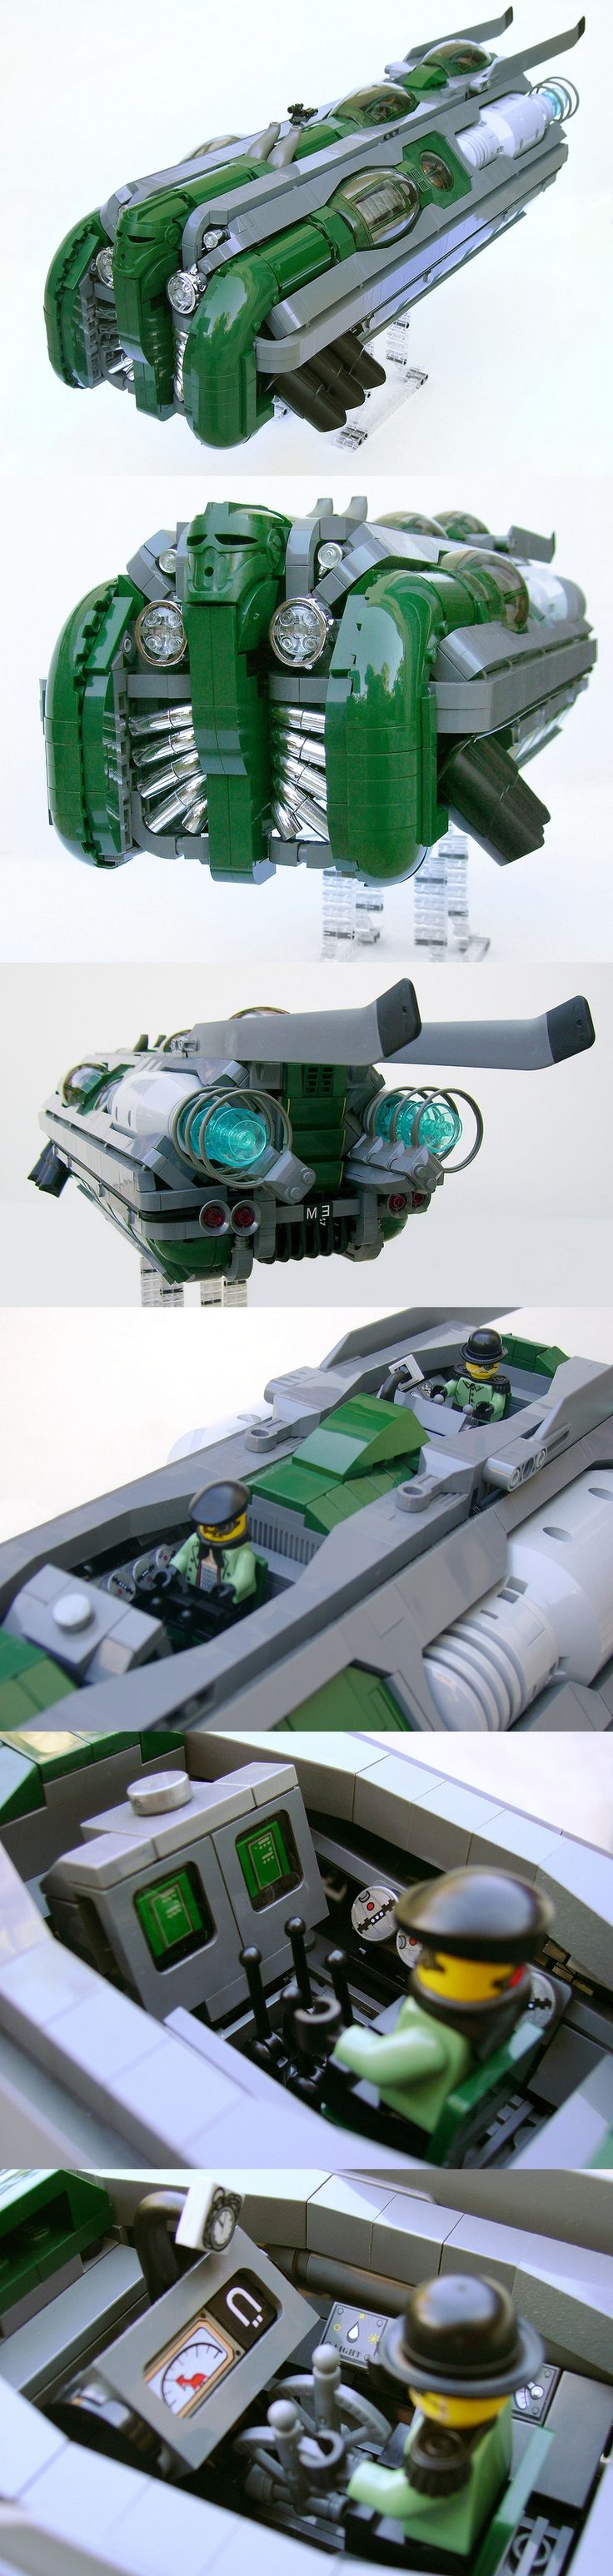 Dieselpunk Machine_n°3 Lego awesomeness!